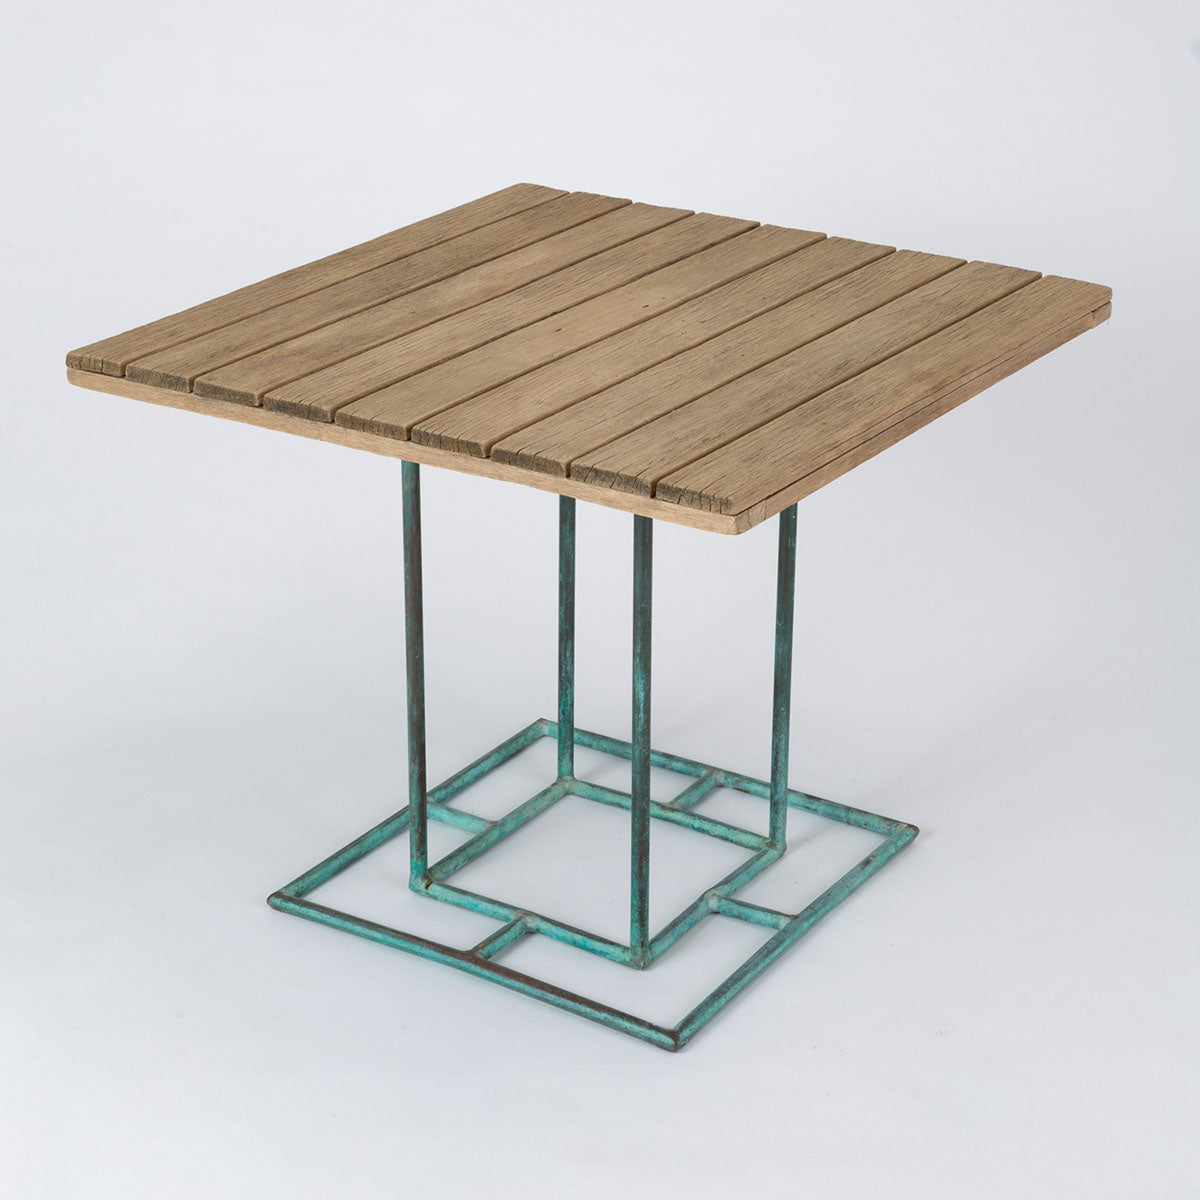 Bronze Patio Dining Table with Wooden Top by Walter Lamb for Brown Jordan